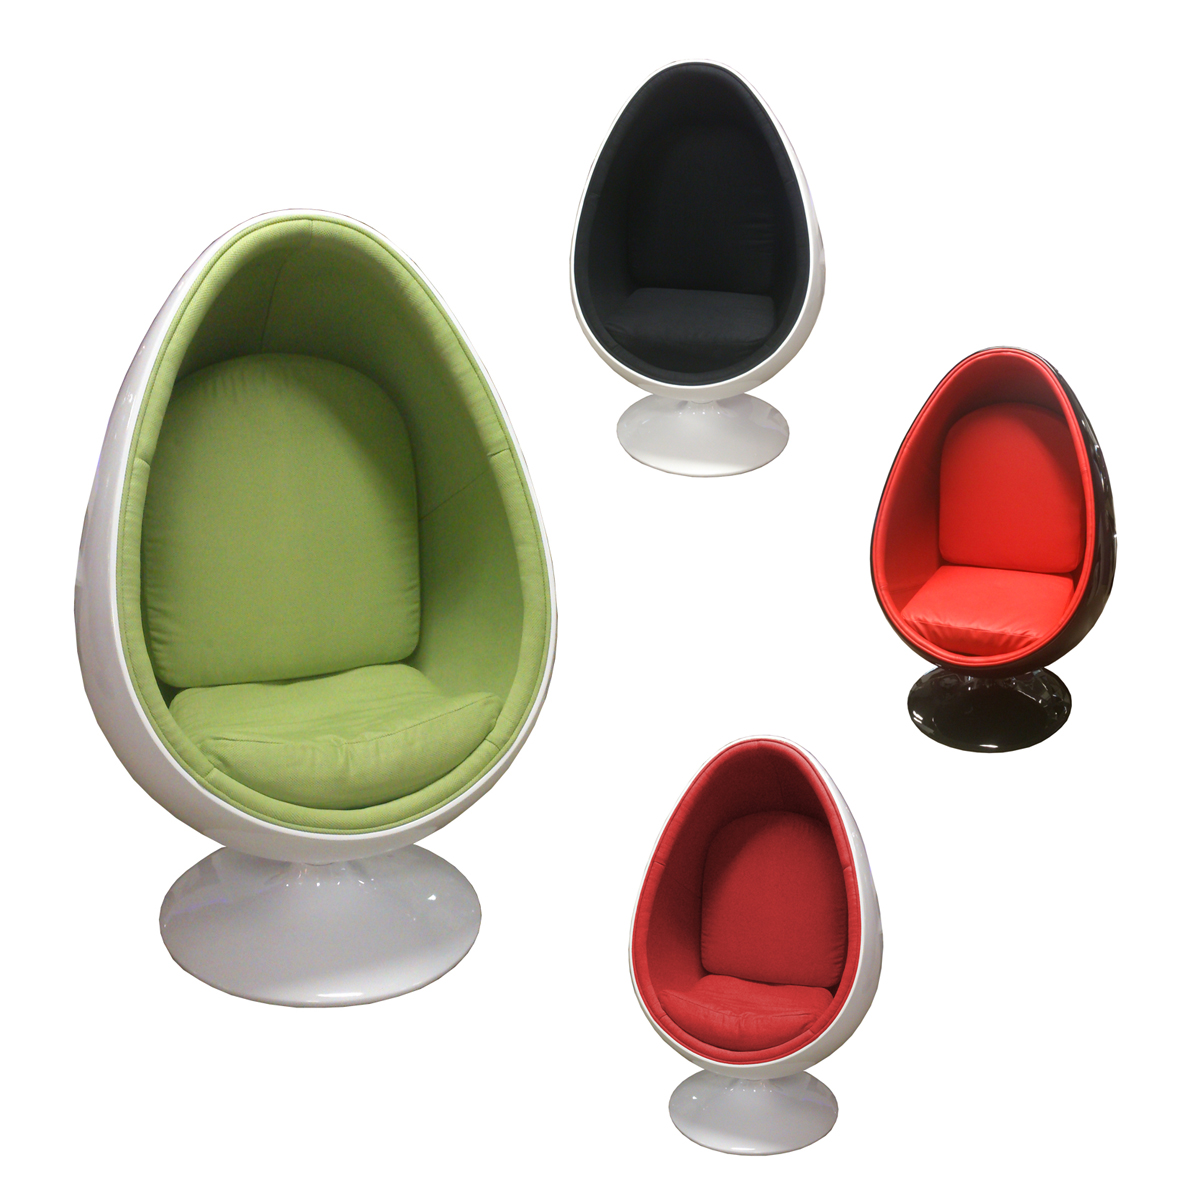 Sessel Retro Ebay Details Zu Lounge Sessel Retro Design Sitzei Space Egg Glasfaser Lackiert Mit Polster